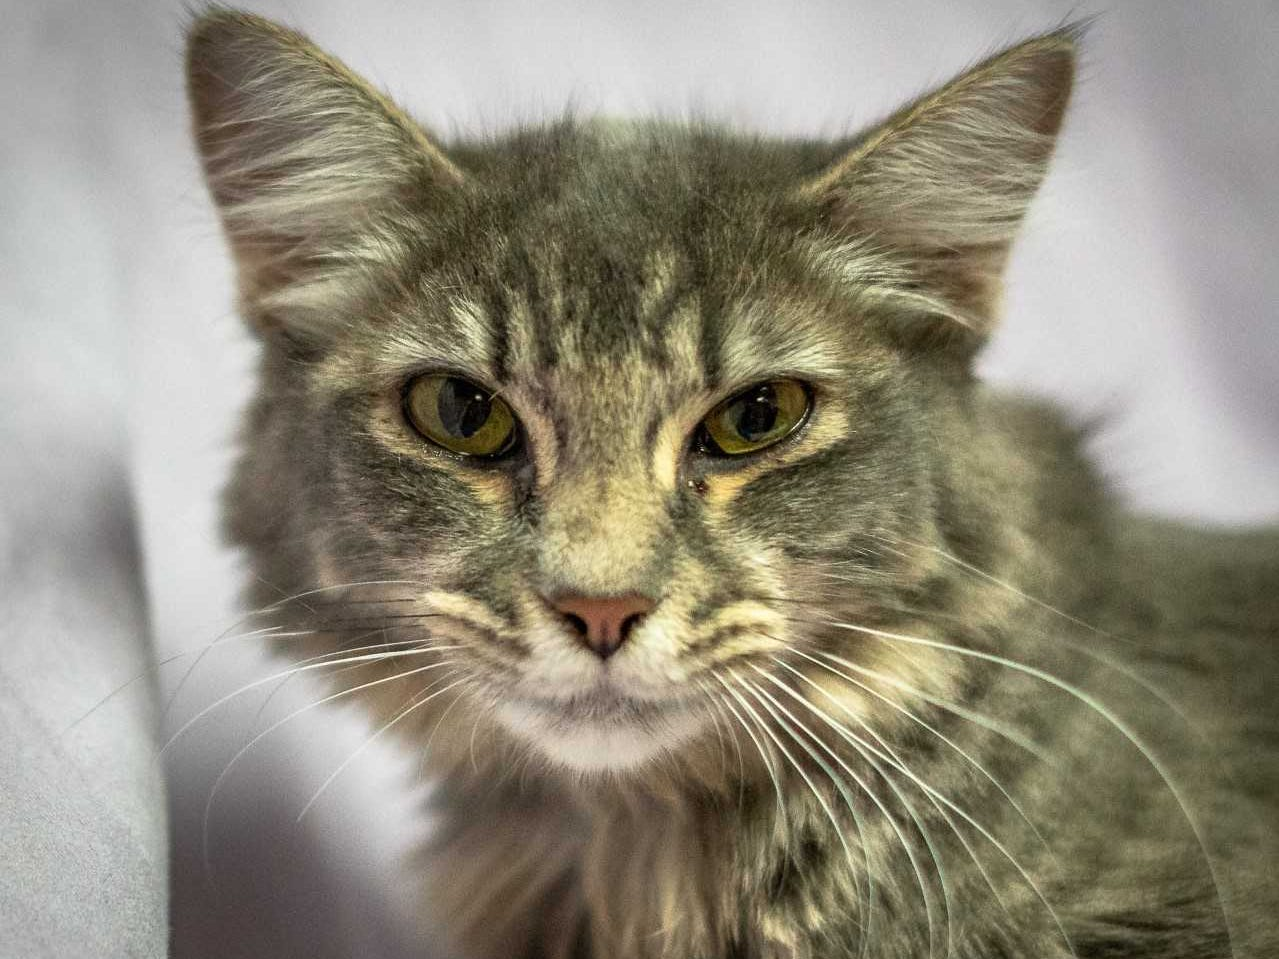 Bliss - Male domestic medium hair, 2 years old. Intake date: 7/12/2018